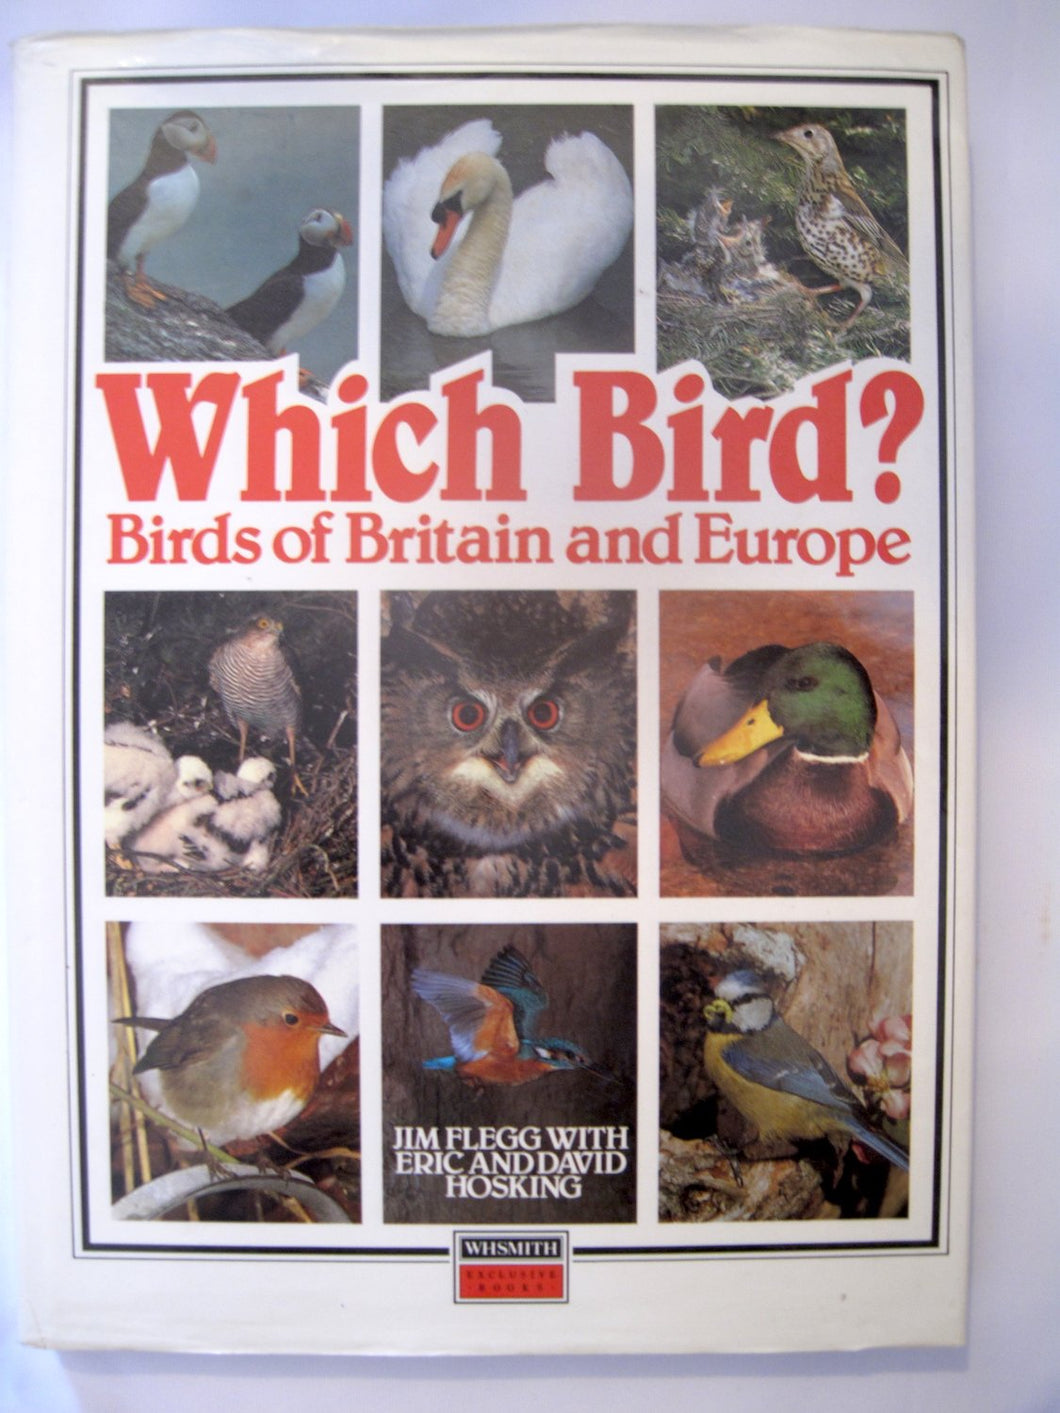 Which Bird - Birds of Britain and Europe [Hardcover] Flegg, Jim and Eric and David Hosking; Arthur Singer